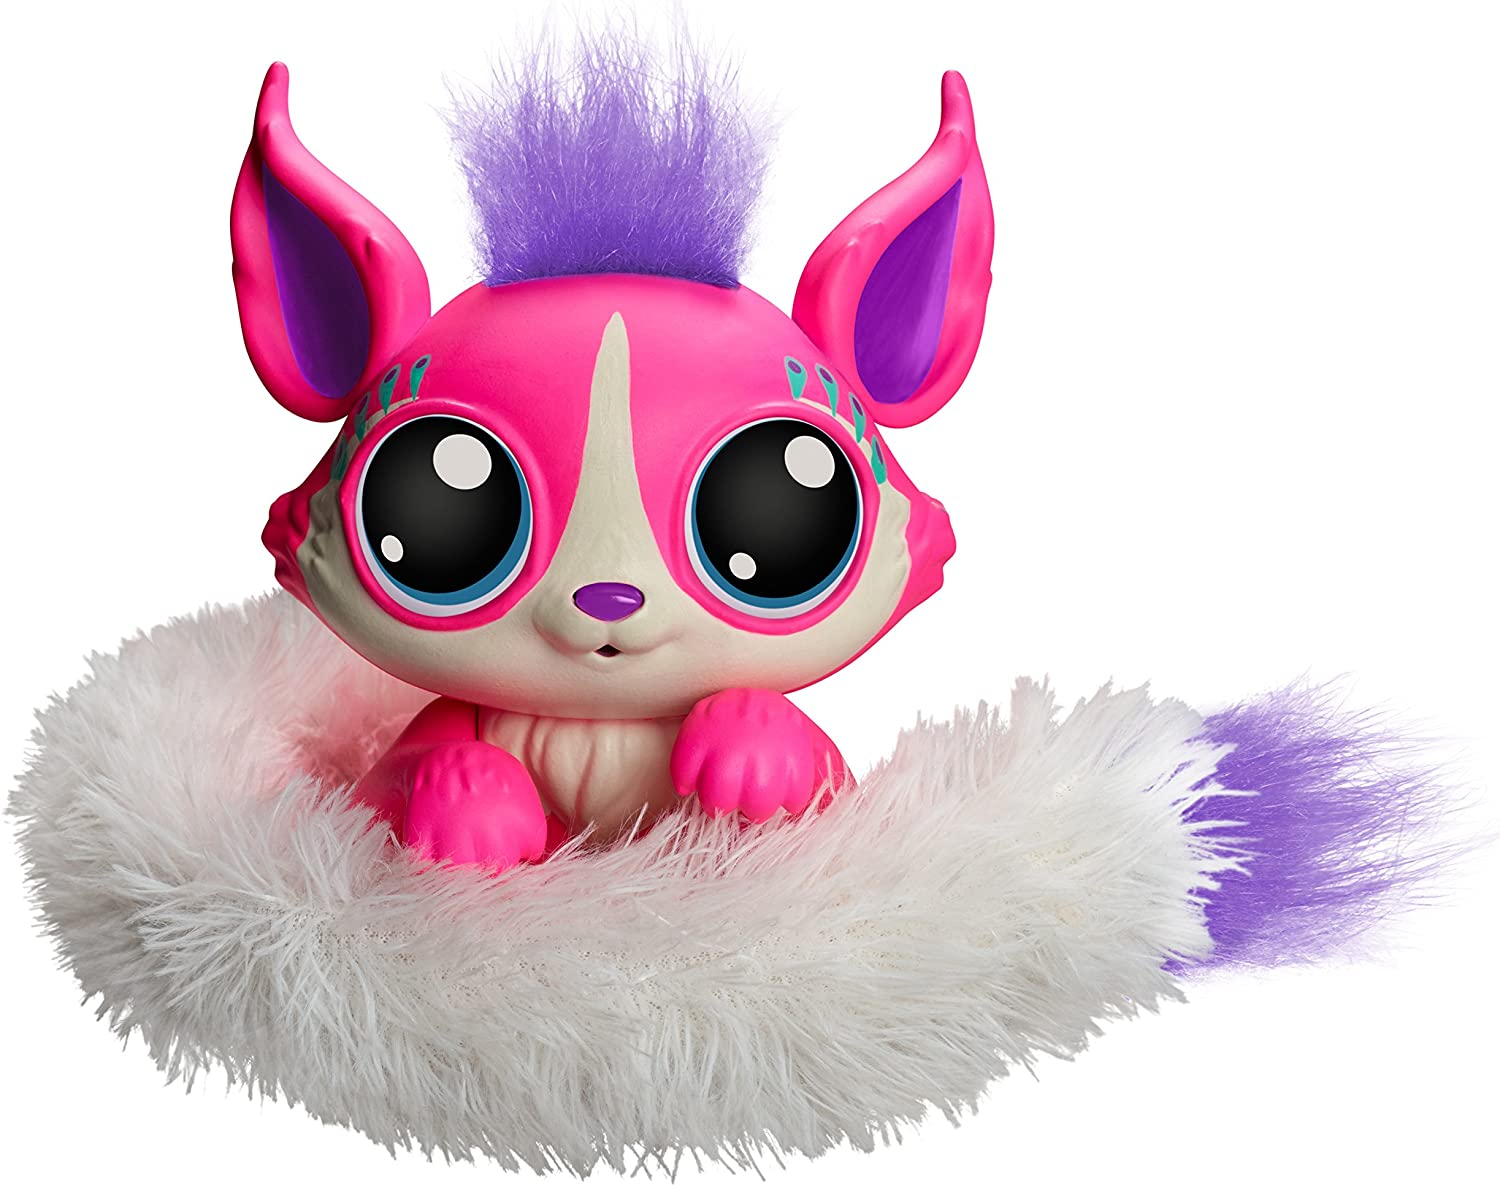 an adorable LIl' Gleemerz toy in bright pink with white furry tail for girls